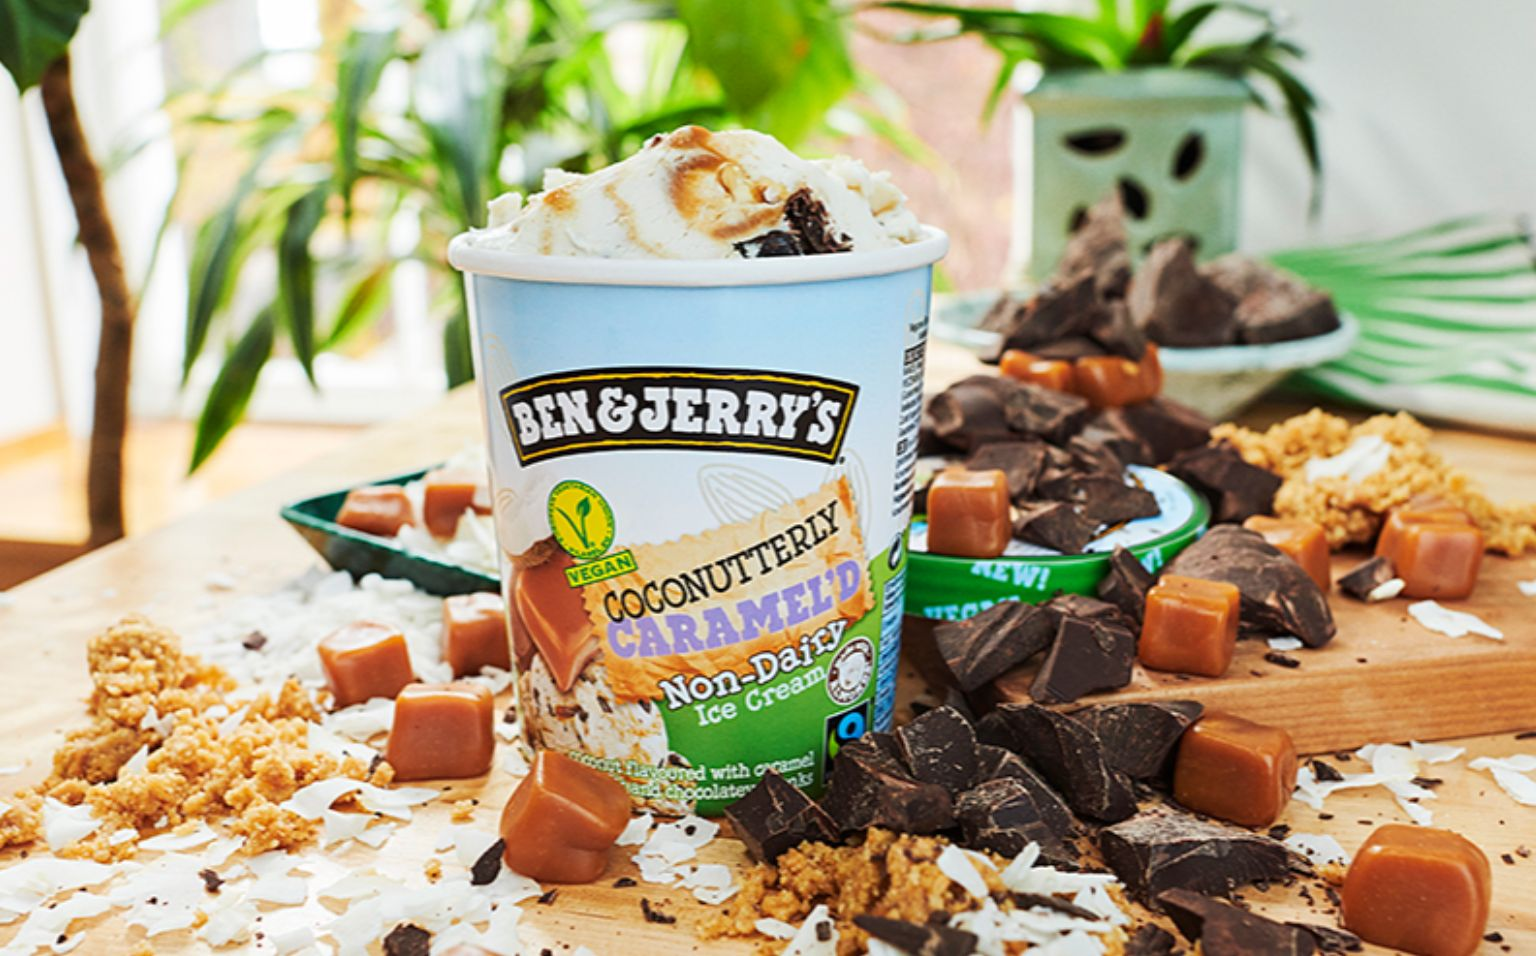 Ben & Jerry's Coconutterly Caramel'd